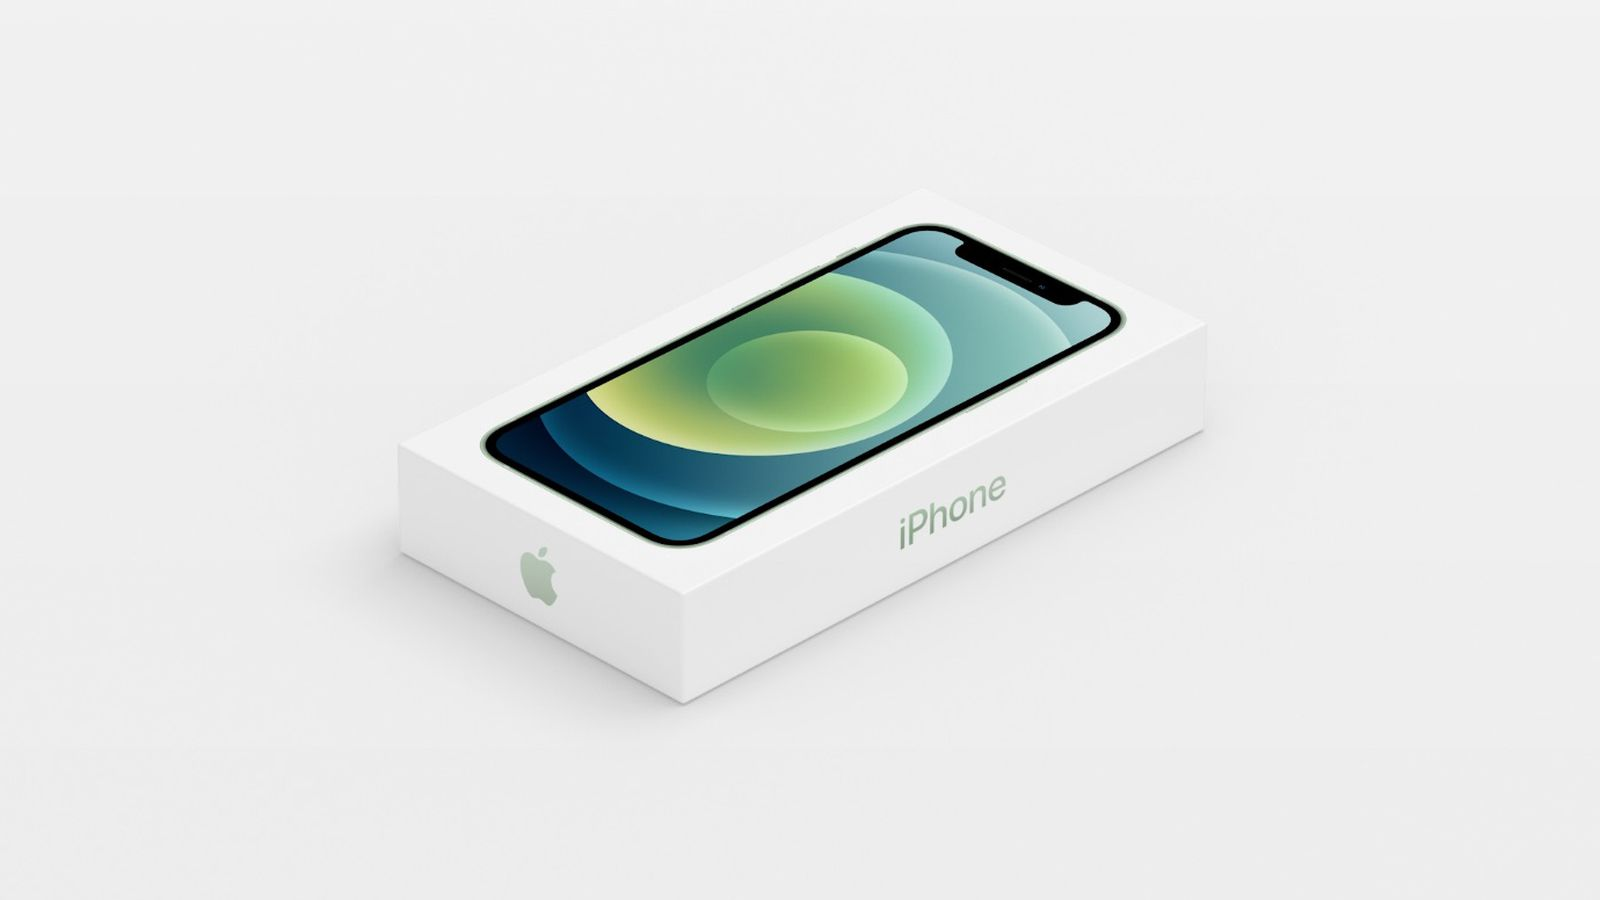 iPhone 12 Box